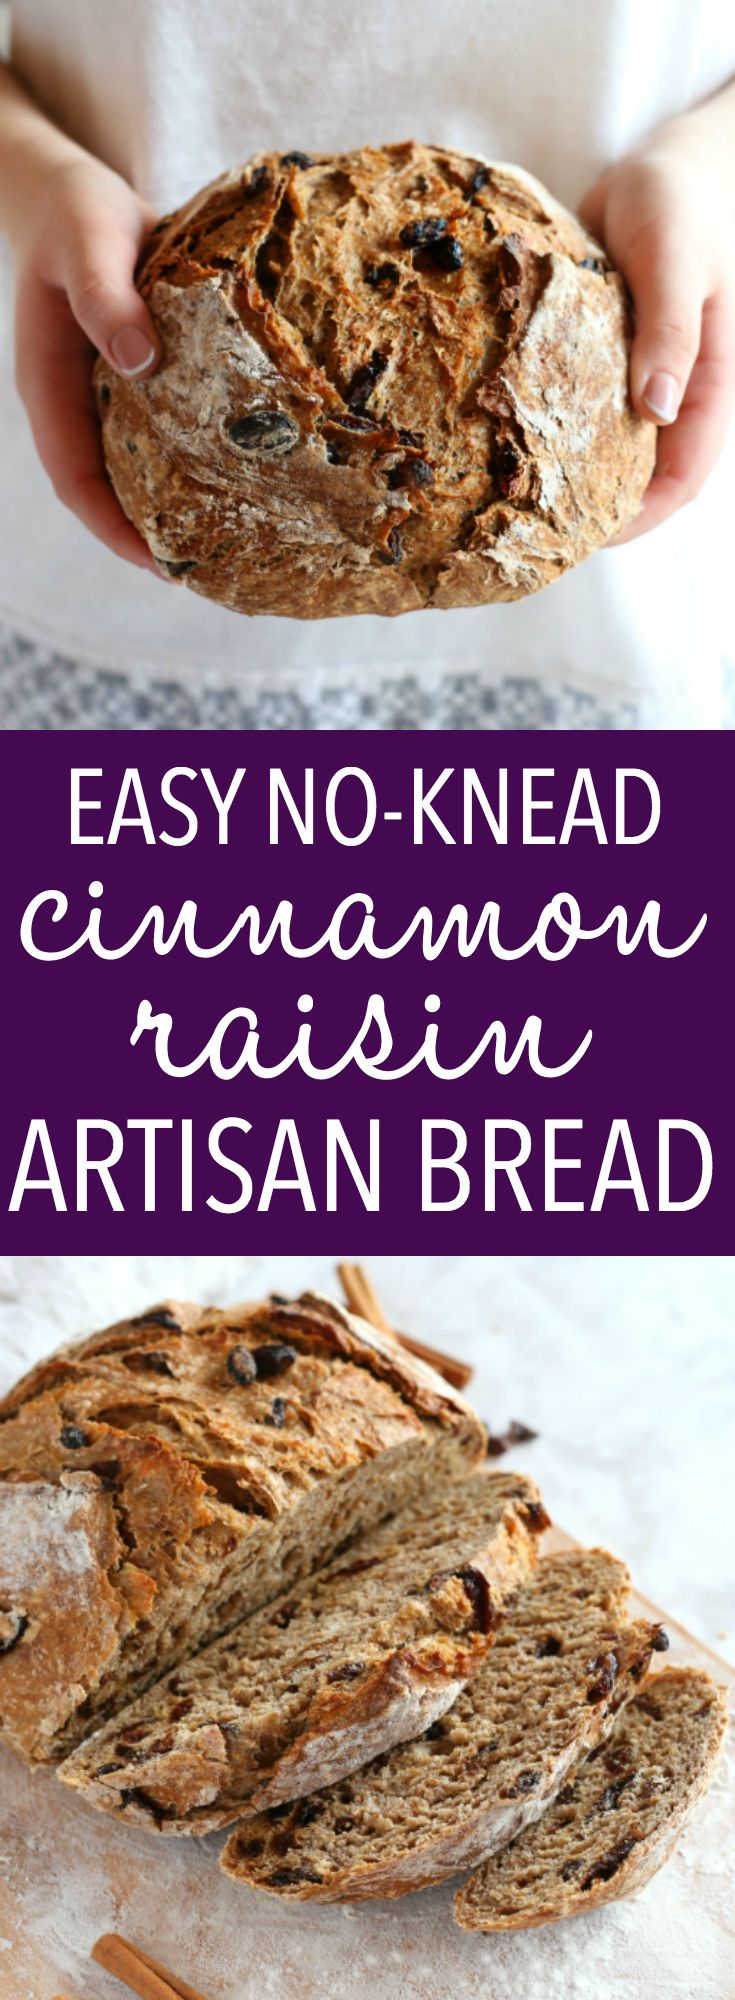 This Easy No Knead Cinnamon Raisin Artisan Bread is crusty on the outside, tender and fluffy on the inside and packed with sweet cinnamon flavour and juicy raisins. And it's SO easy to make this bakery-style loaf at home in your own kitchen! Recipe from thebusybaker.ca! #bakerybread #nokneadbread #artisanbread #bestcinnamonraisinbread via @busybakerblog